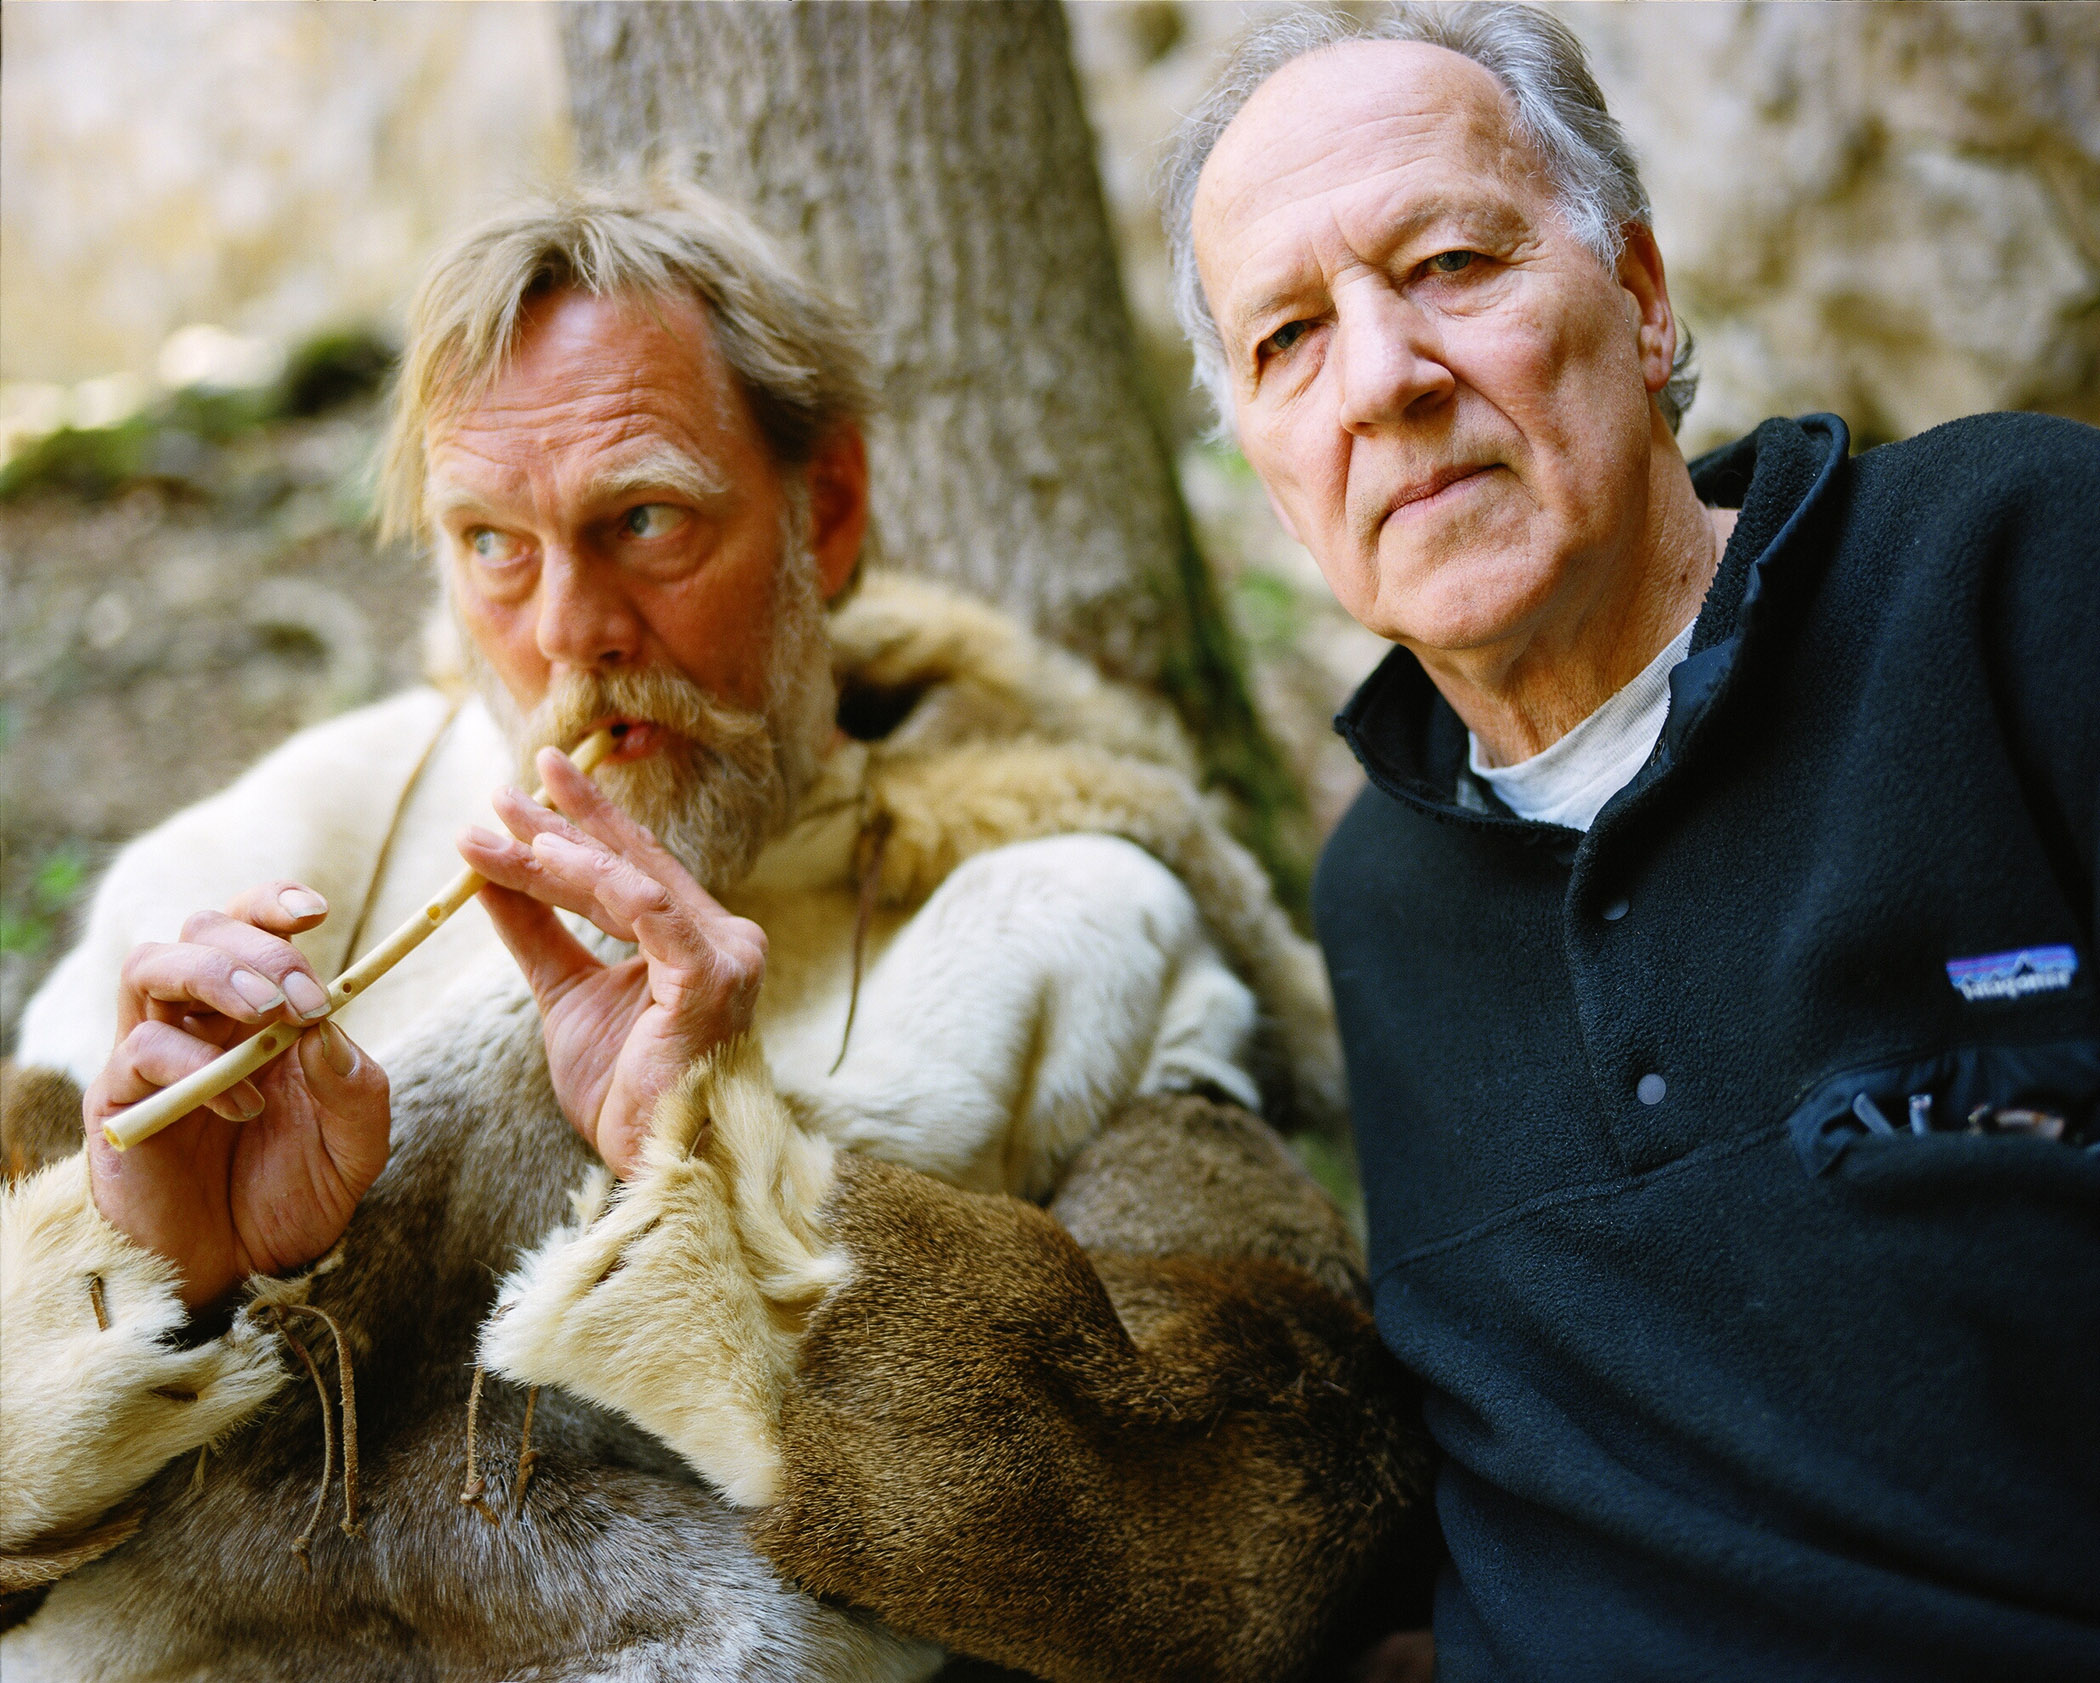 W. Hein and director Werner Herzog on the set of Cave of Forgotten Dreams.